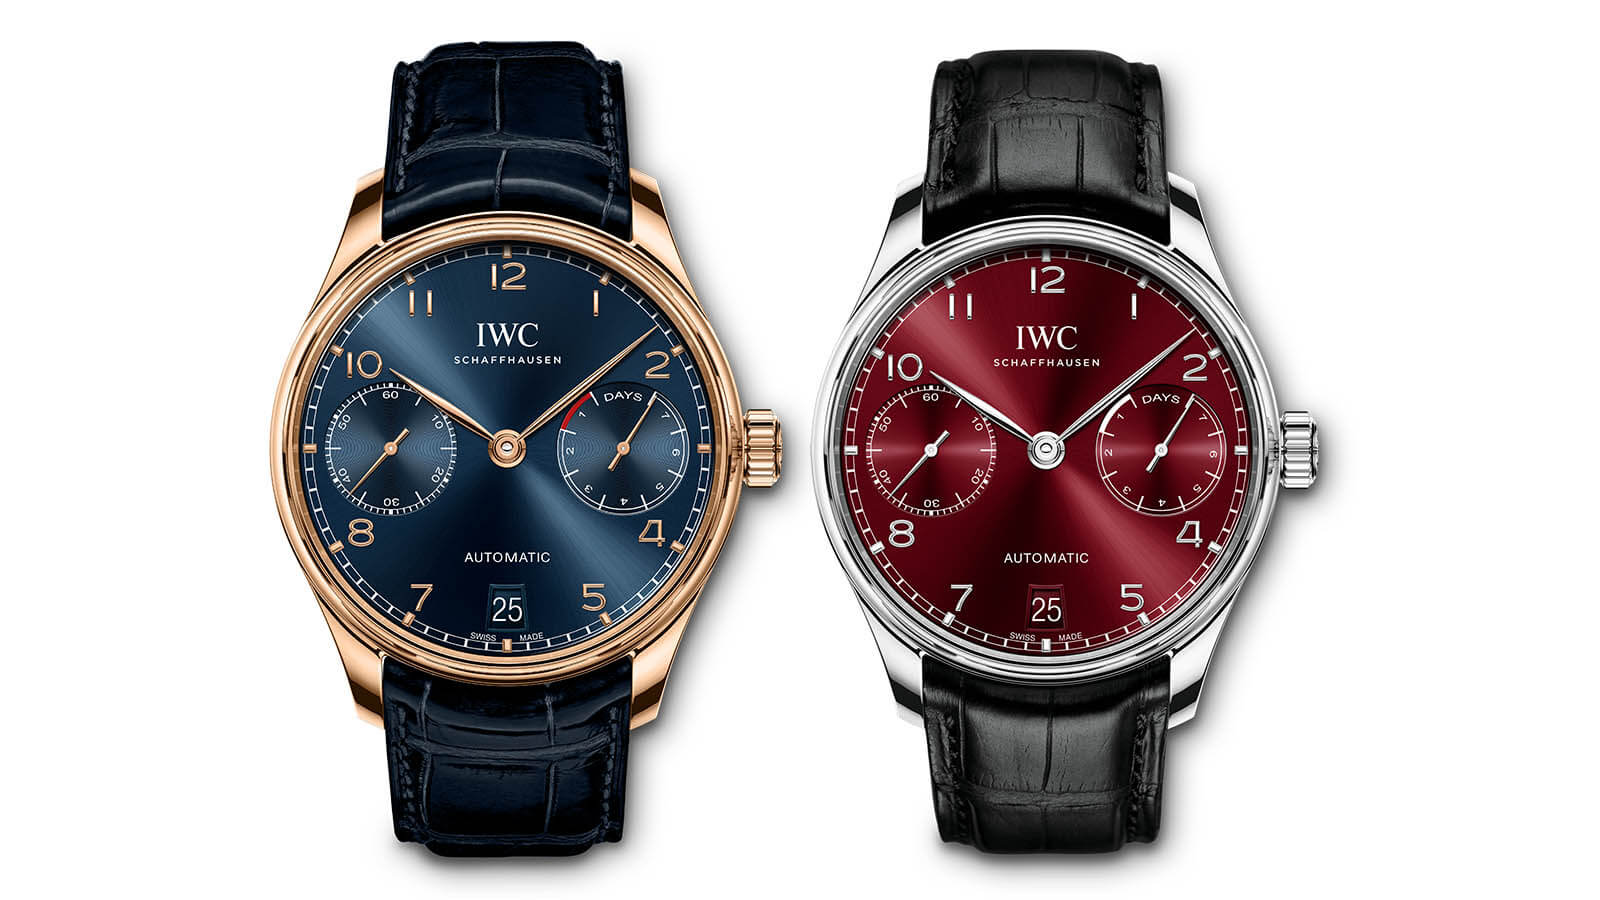 IWC SCHAFFHAUSEN Portugieser Automatic 2020 Boutique Edition